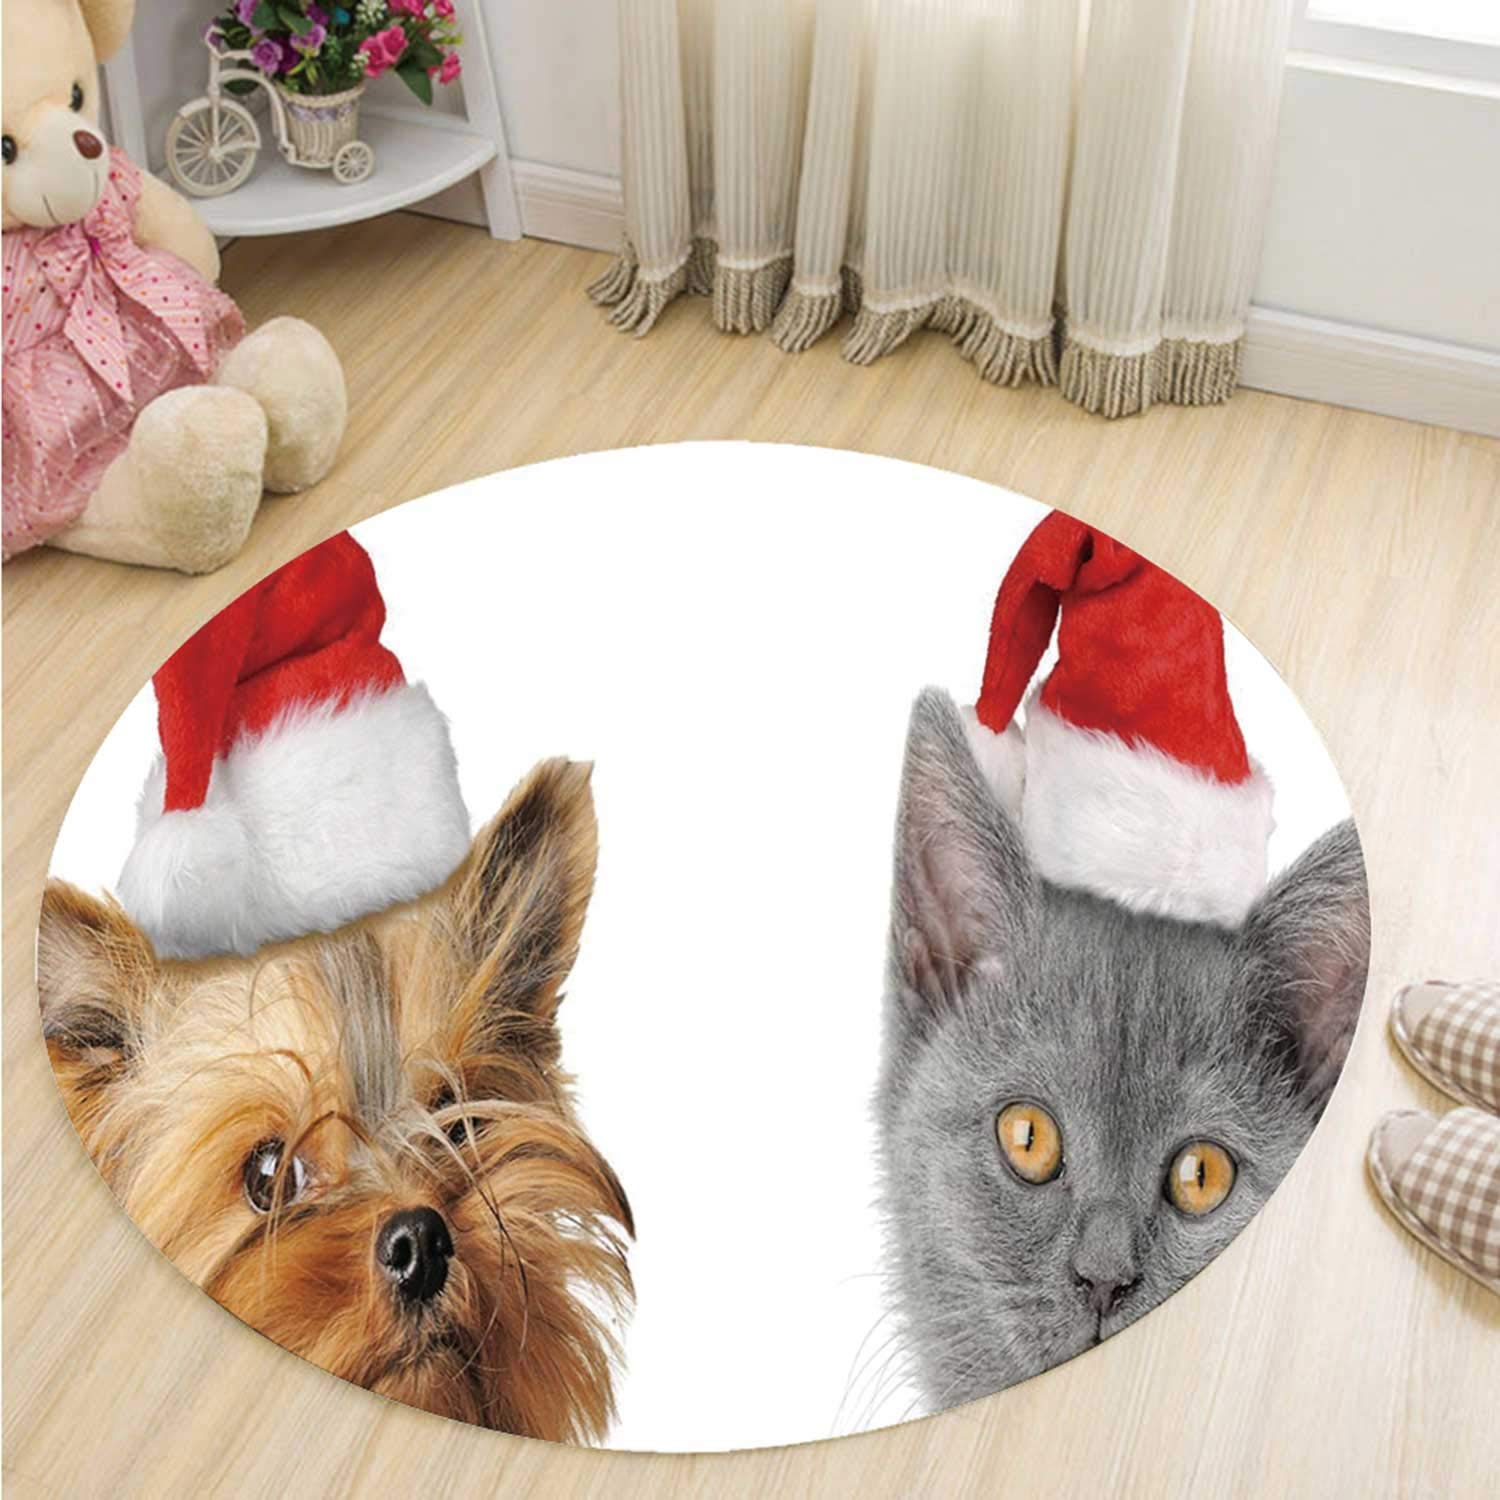 MOOCOM Christmas Non Slip Round Mat,Adorable Cat and Dog with Xmas Hats Domestic Pet Animals Holiday Celebration Decorative for Office,51''R by MOOCOM